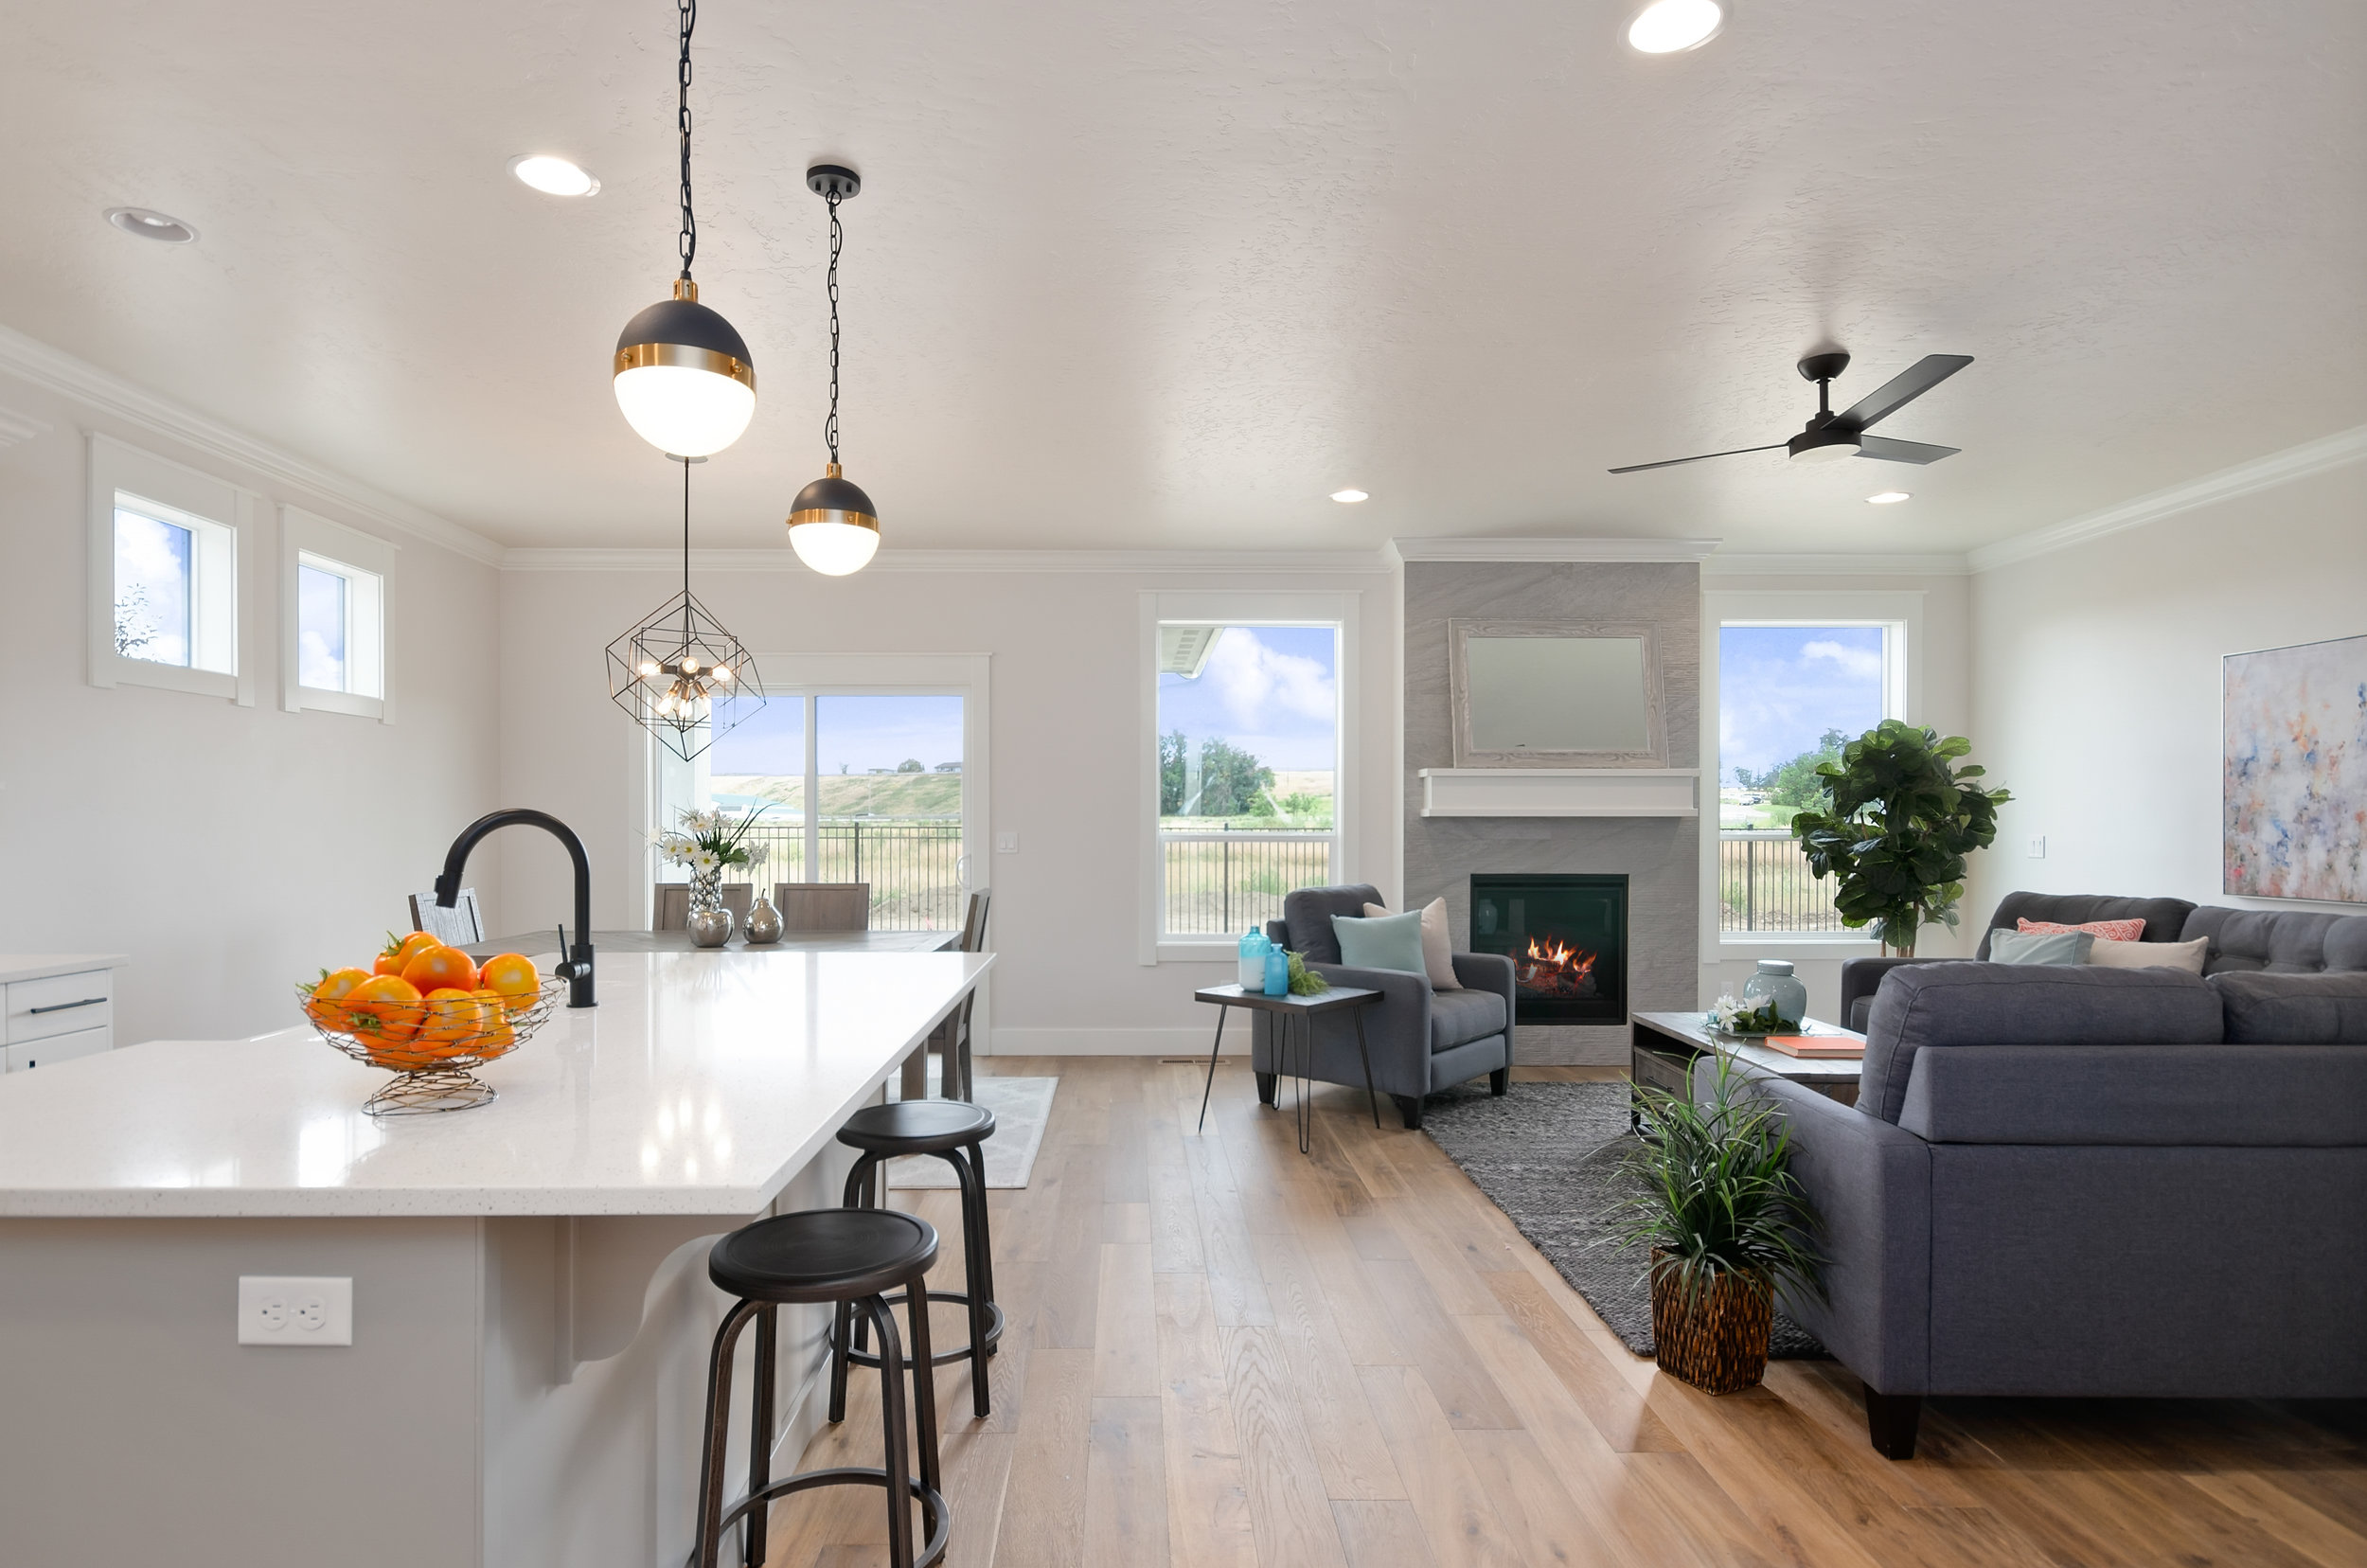 10-Kitchen and Great Room.jpg